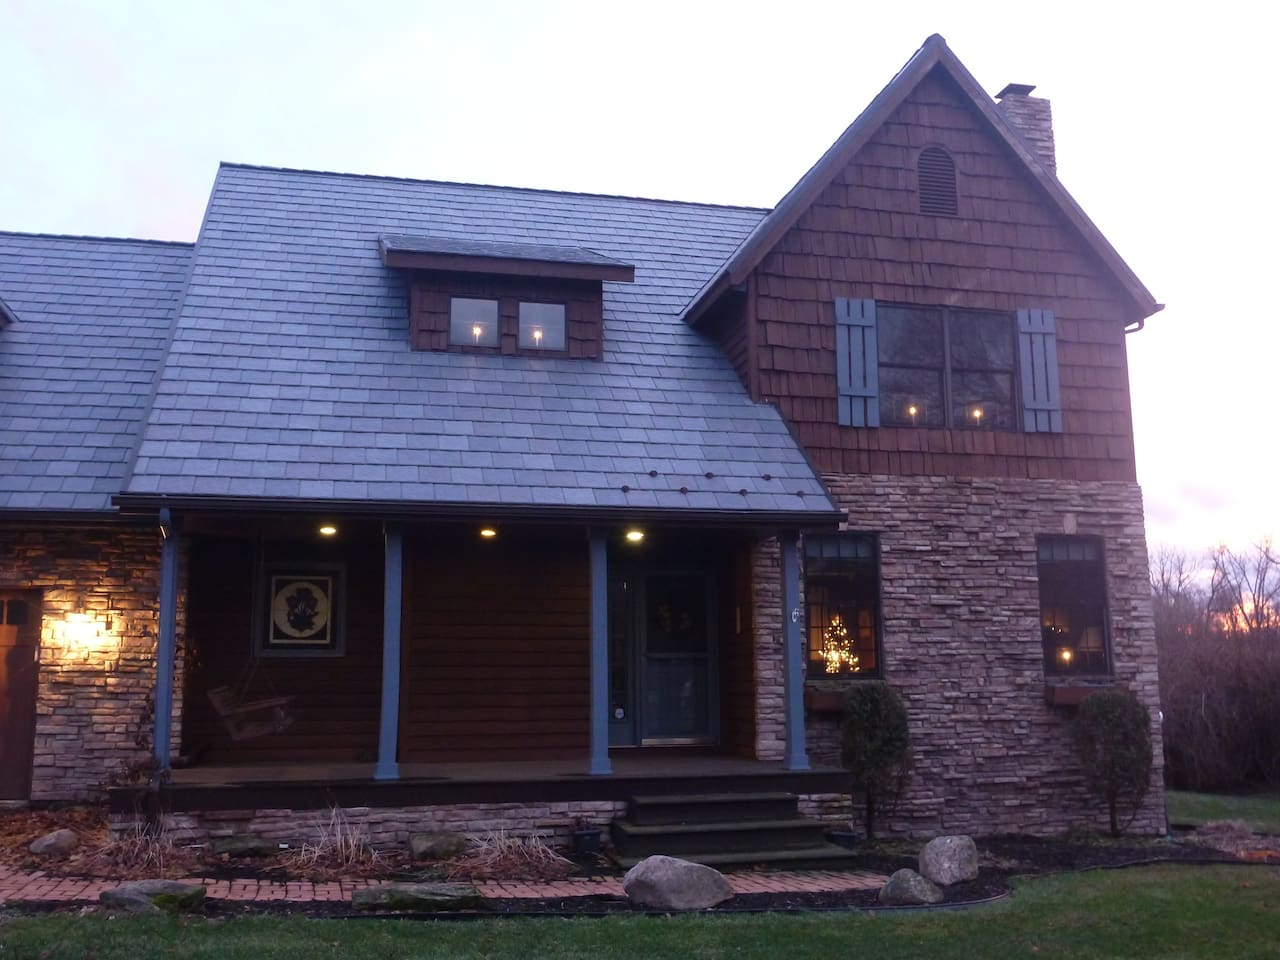 Closeup of front - see porch swing & stained glass window.